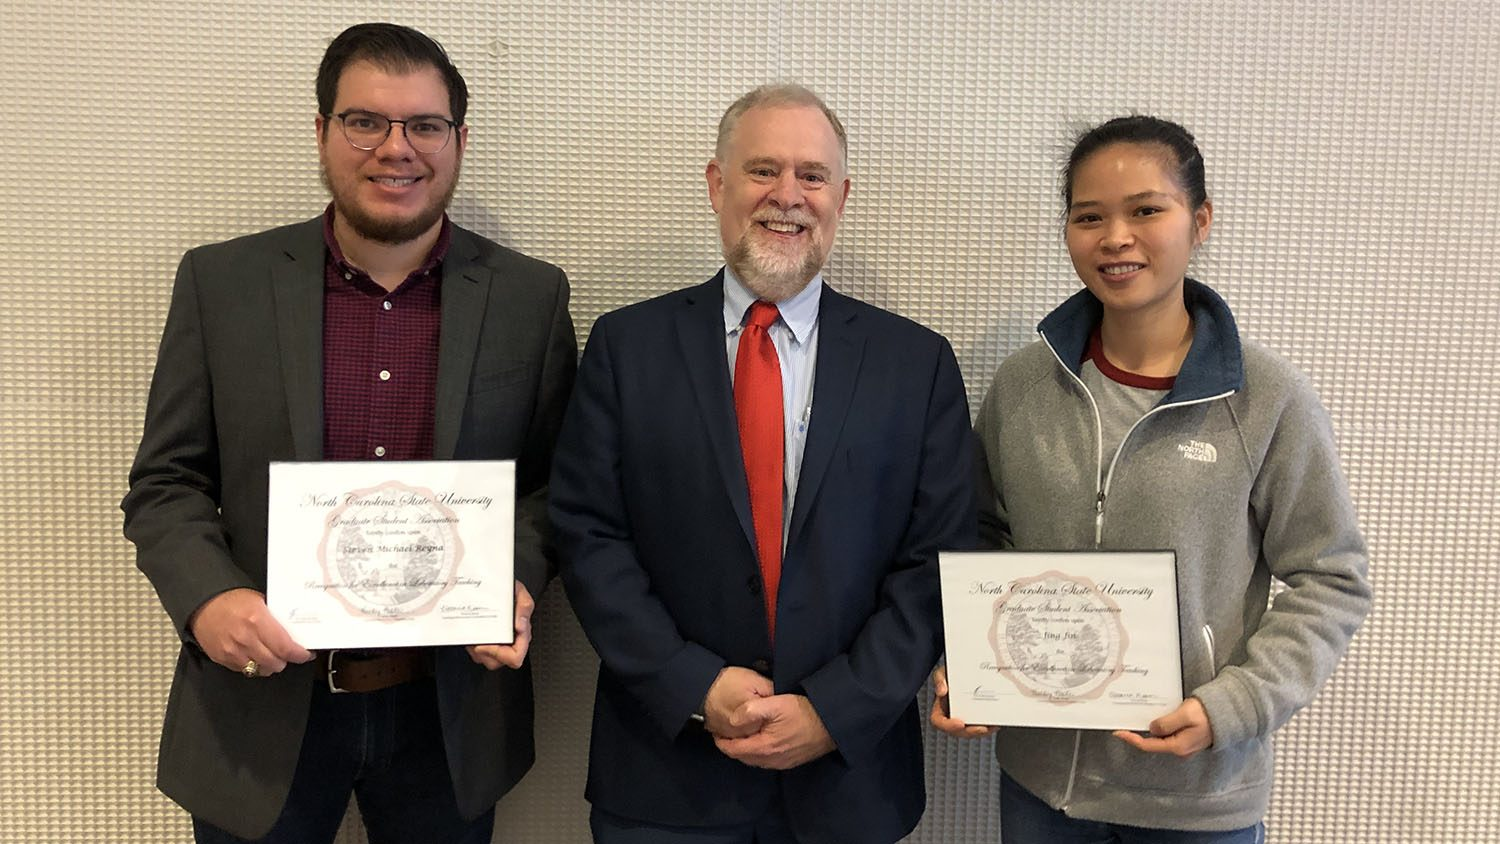 Steven Reyna and Jing Jin with the Dean of the Graduate School, Dr. Peter Harries after receiving Teaching Awards